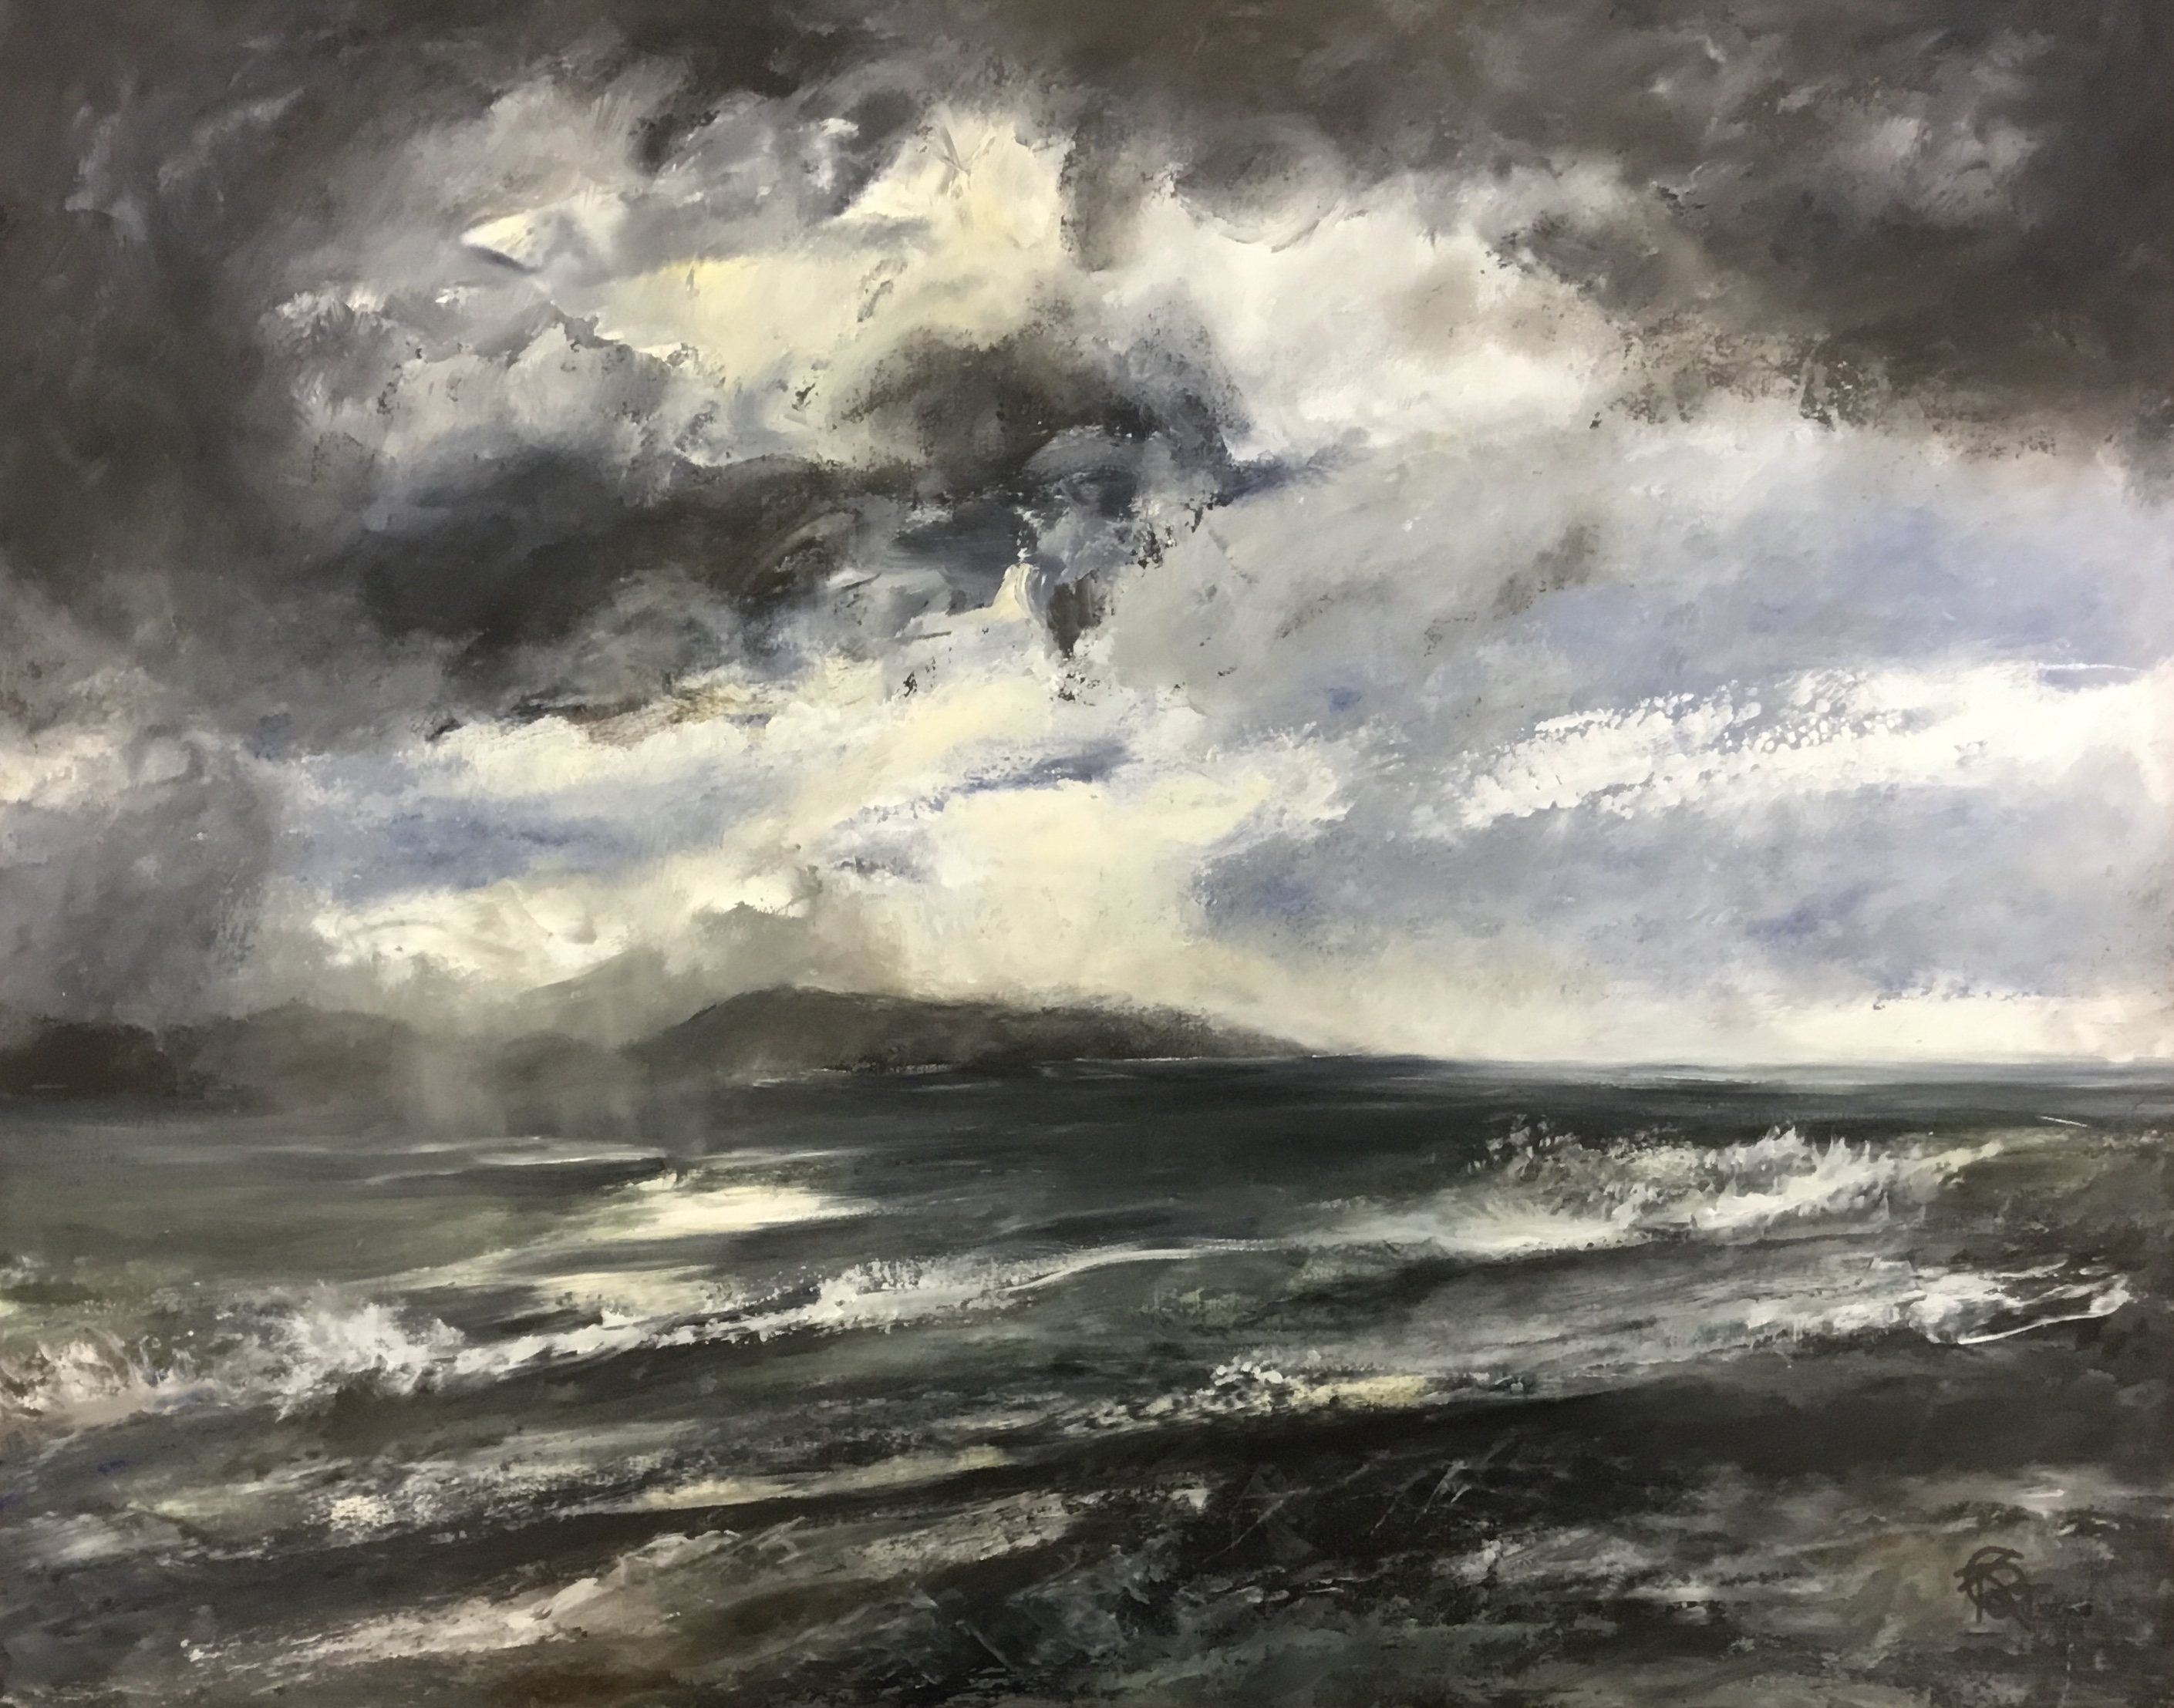 Sacred Land Rain Clouds oil on panel 39x49cm